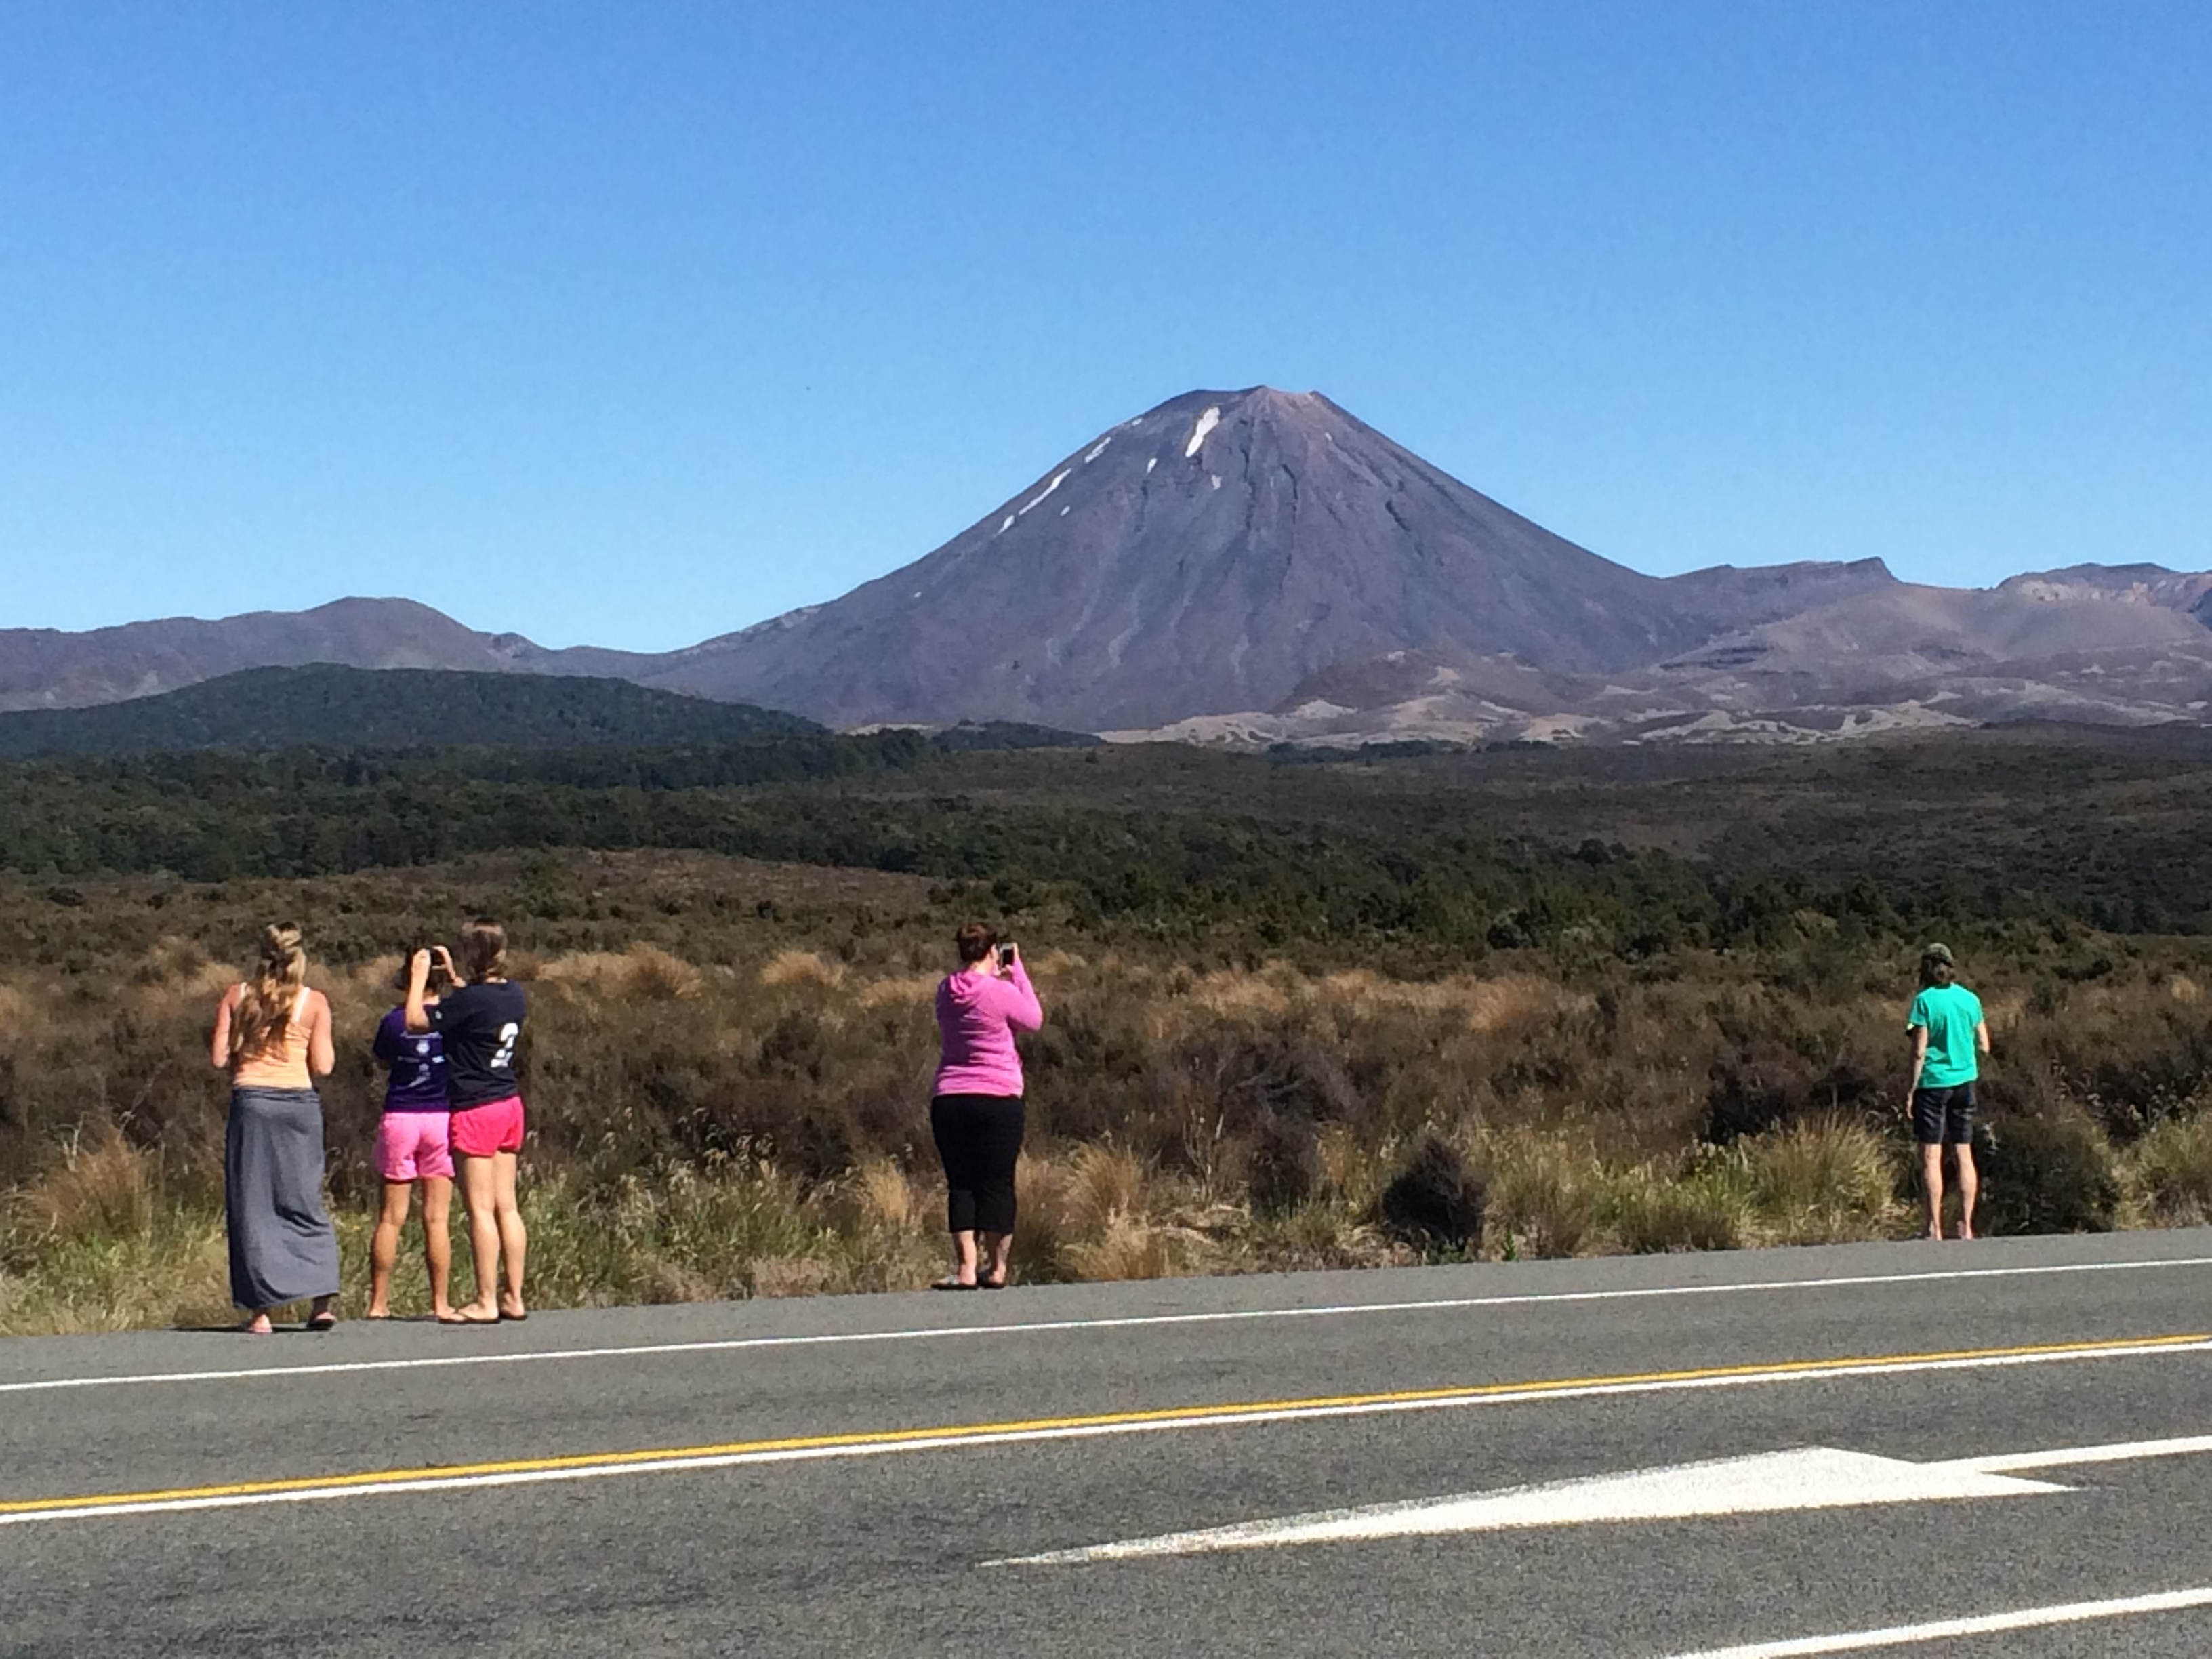 Mt Ngauruhoe AKA Mt DOOM